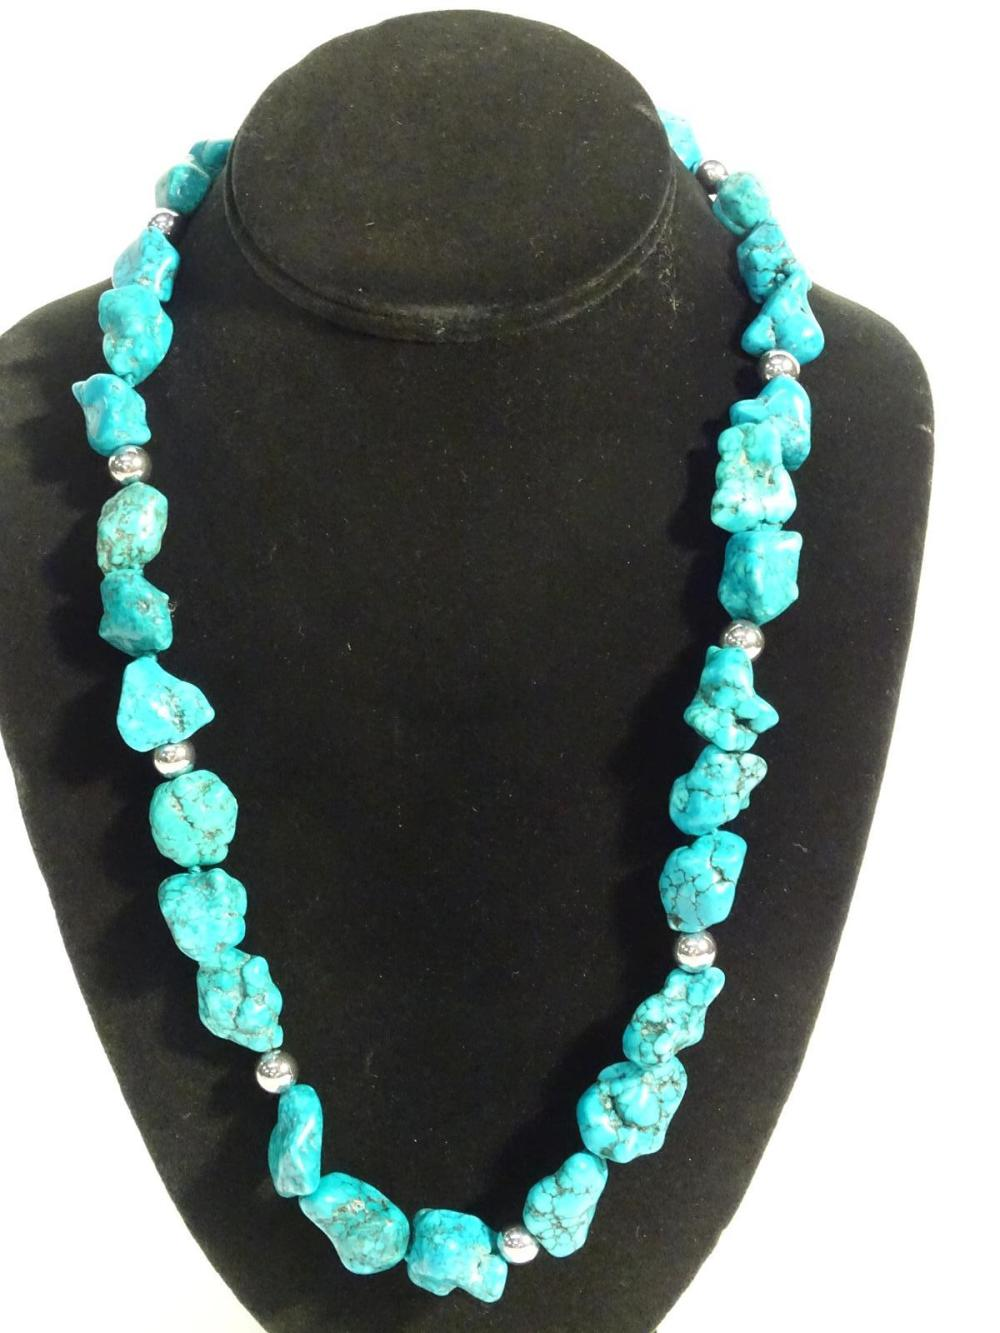 STERLING SILVER, TURQUOISE NECKLACE